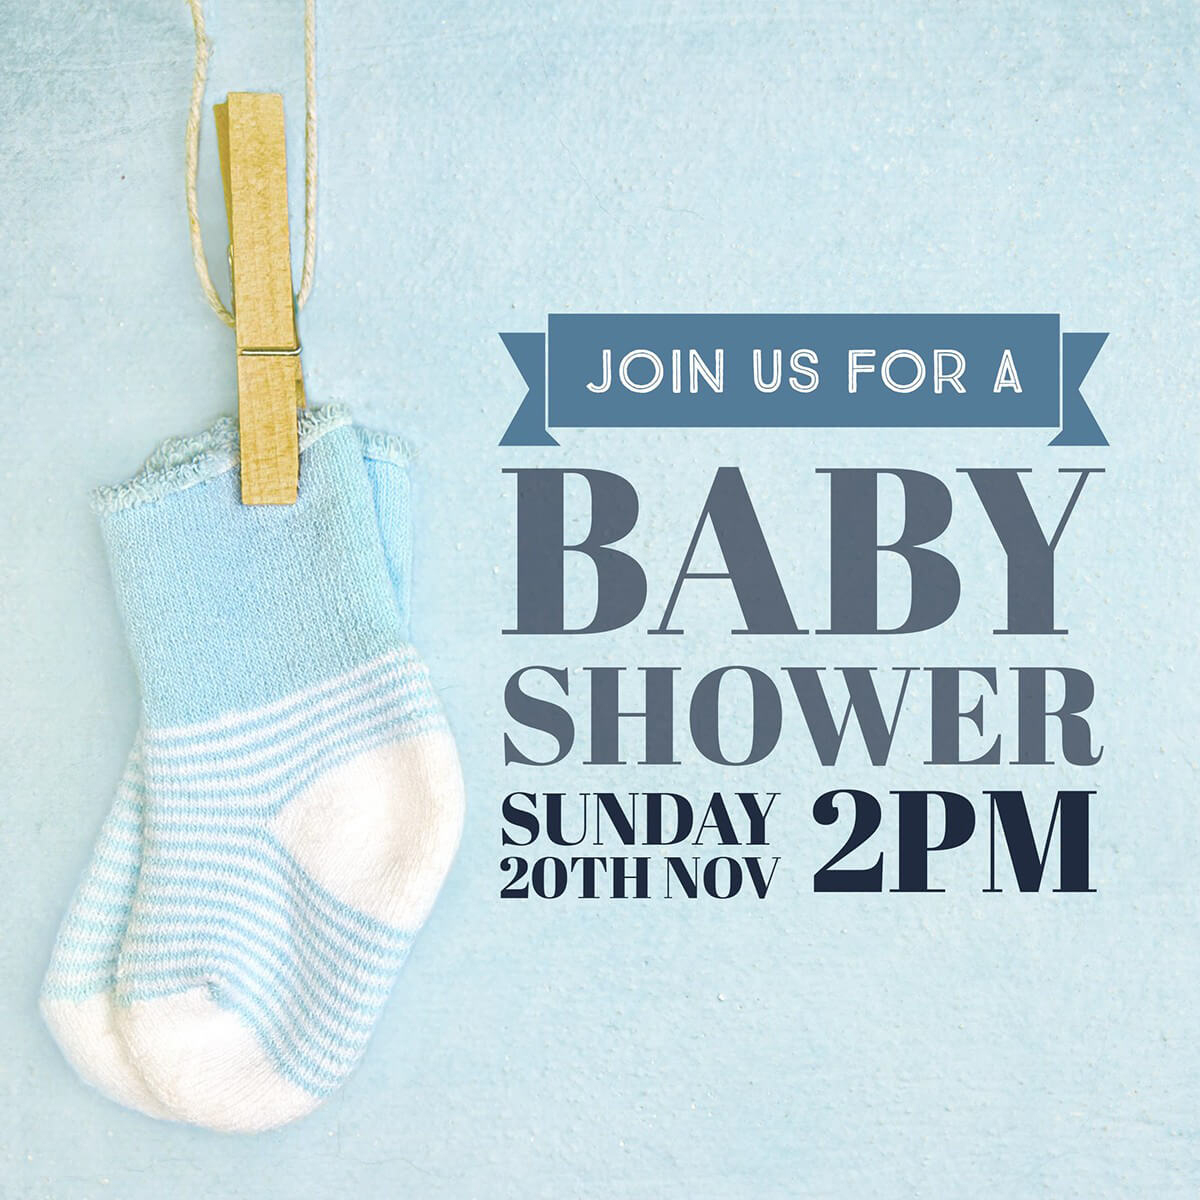 Make Your Own Baby Shower Invitations For Free | Adobe Spark - Create Your Own Baby Shower Invitations Free Printable